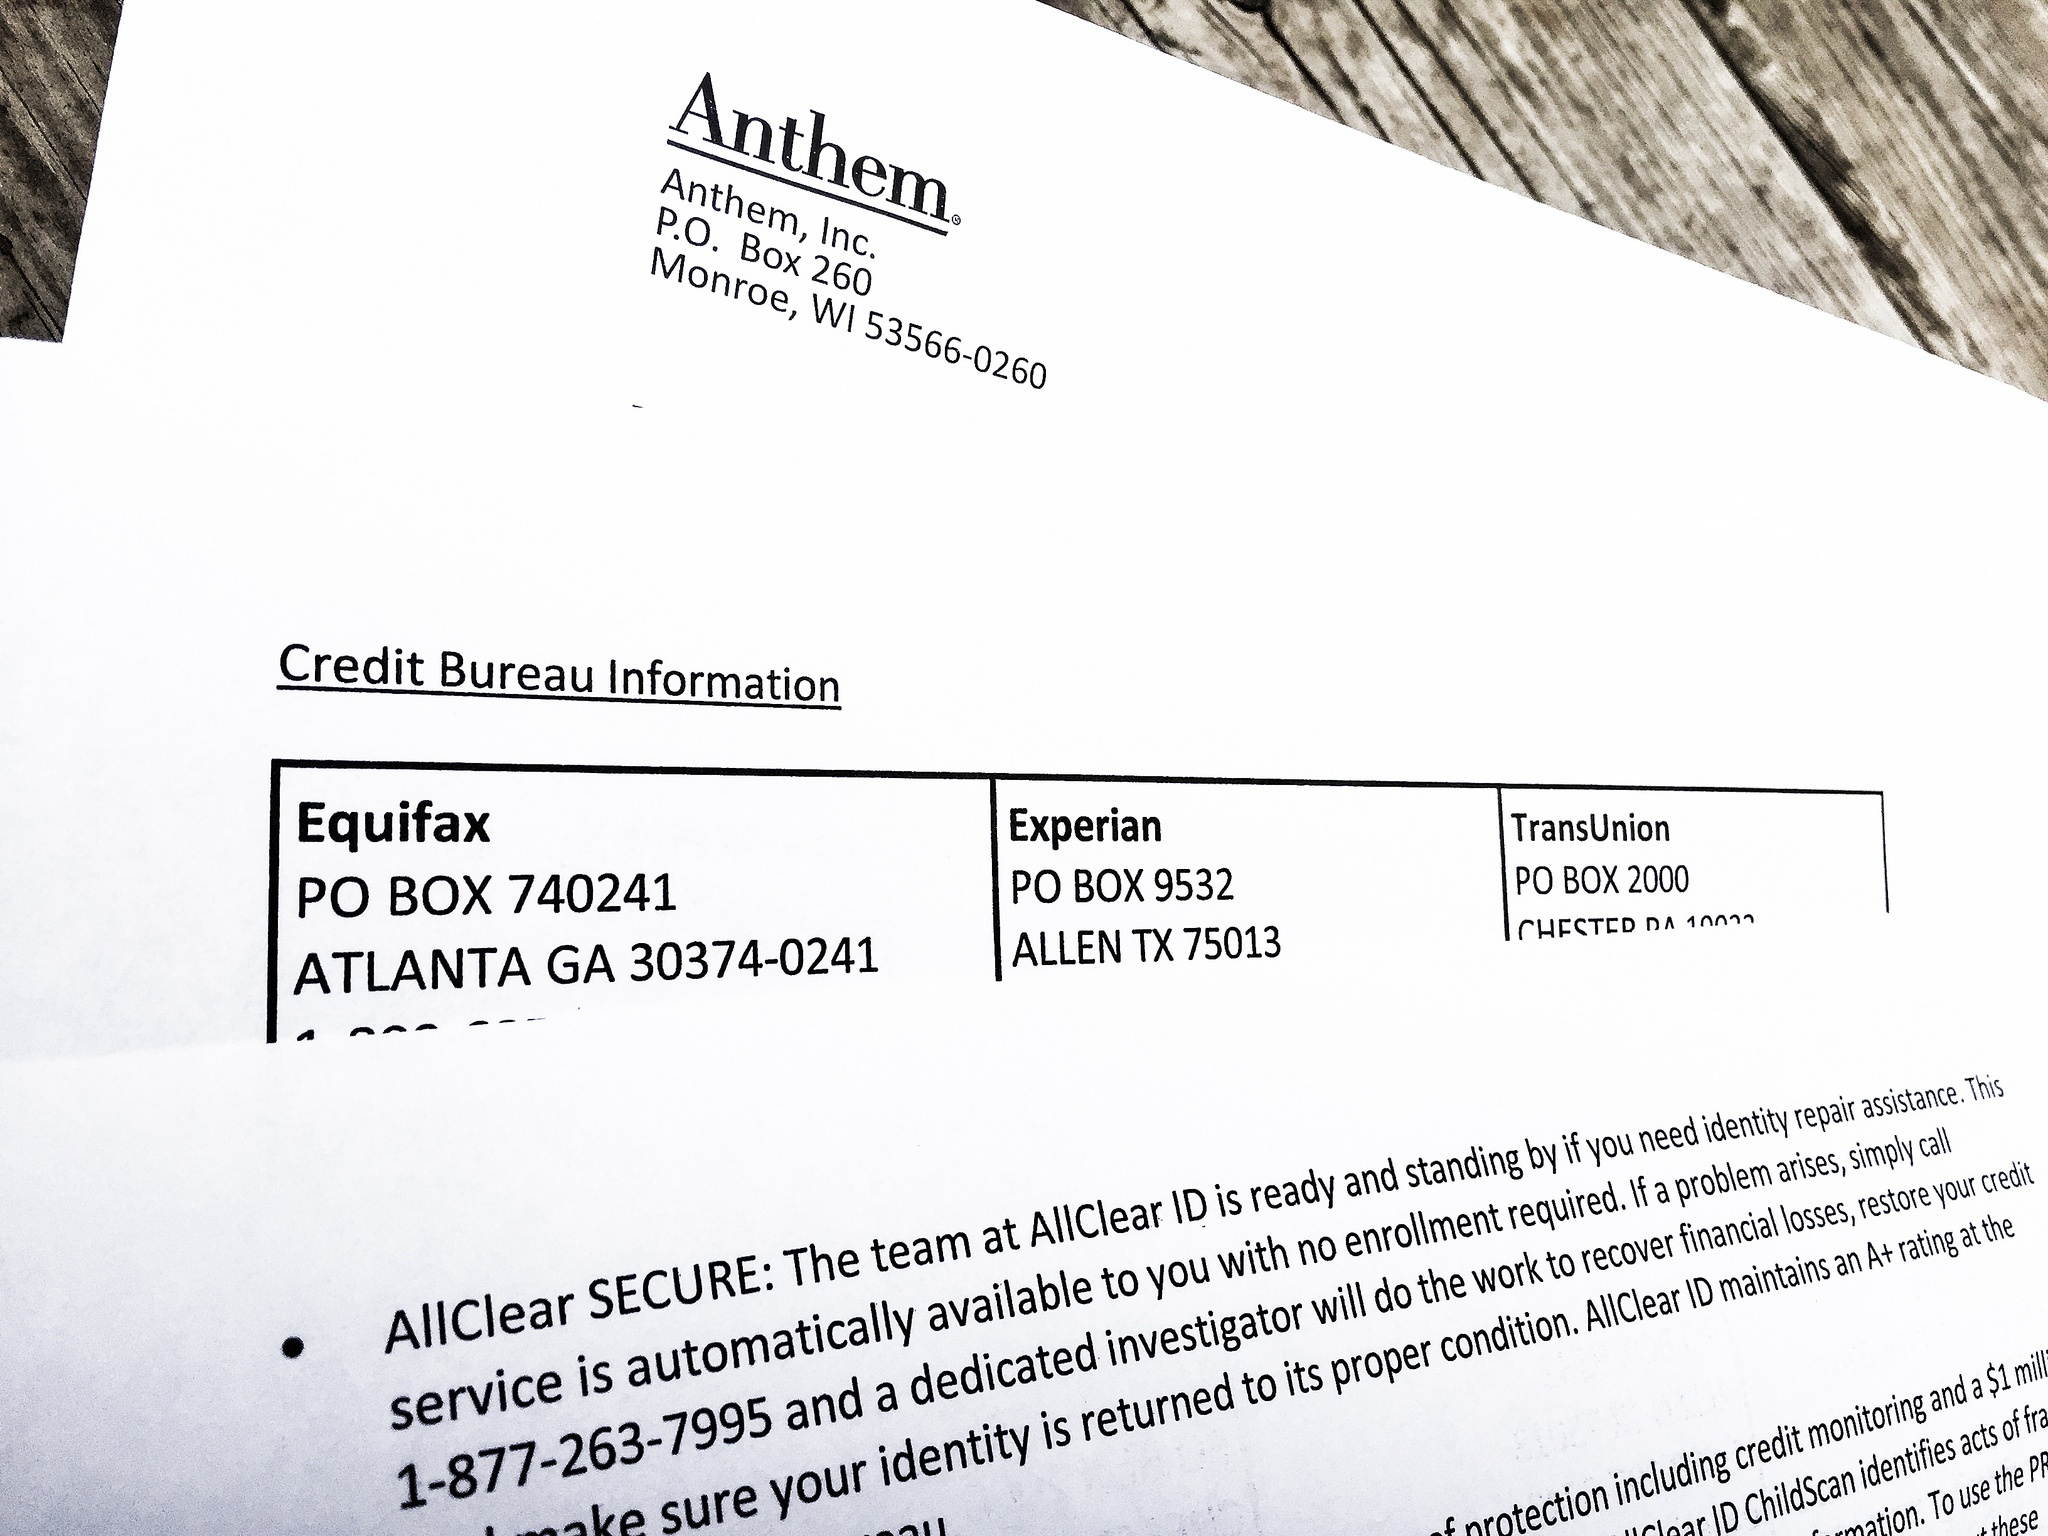 Anthem Agrees to Settle 2015 Data Breach for $115 Million